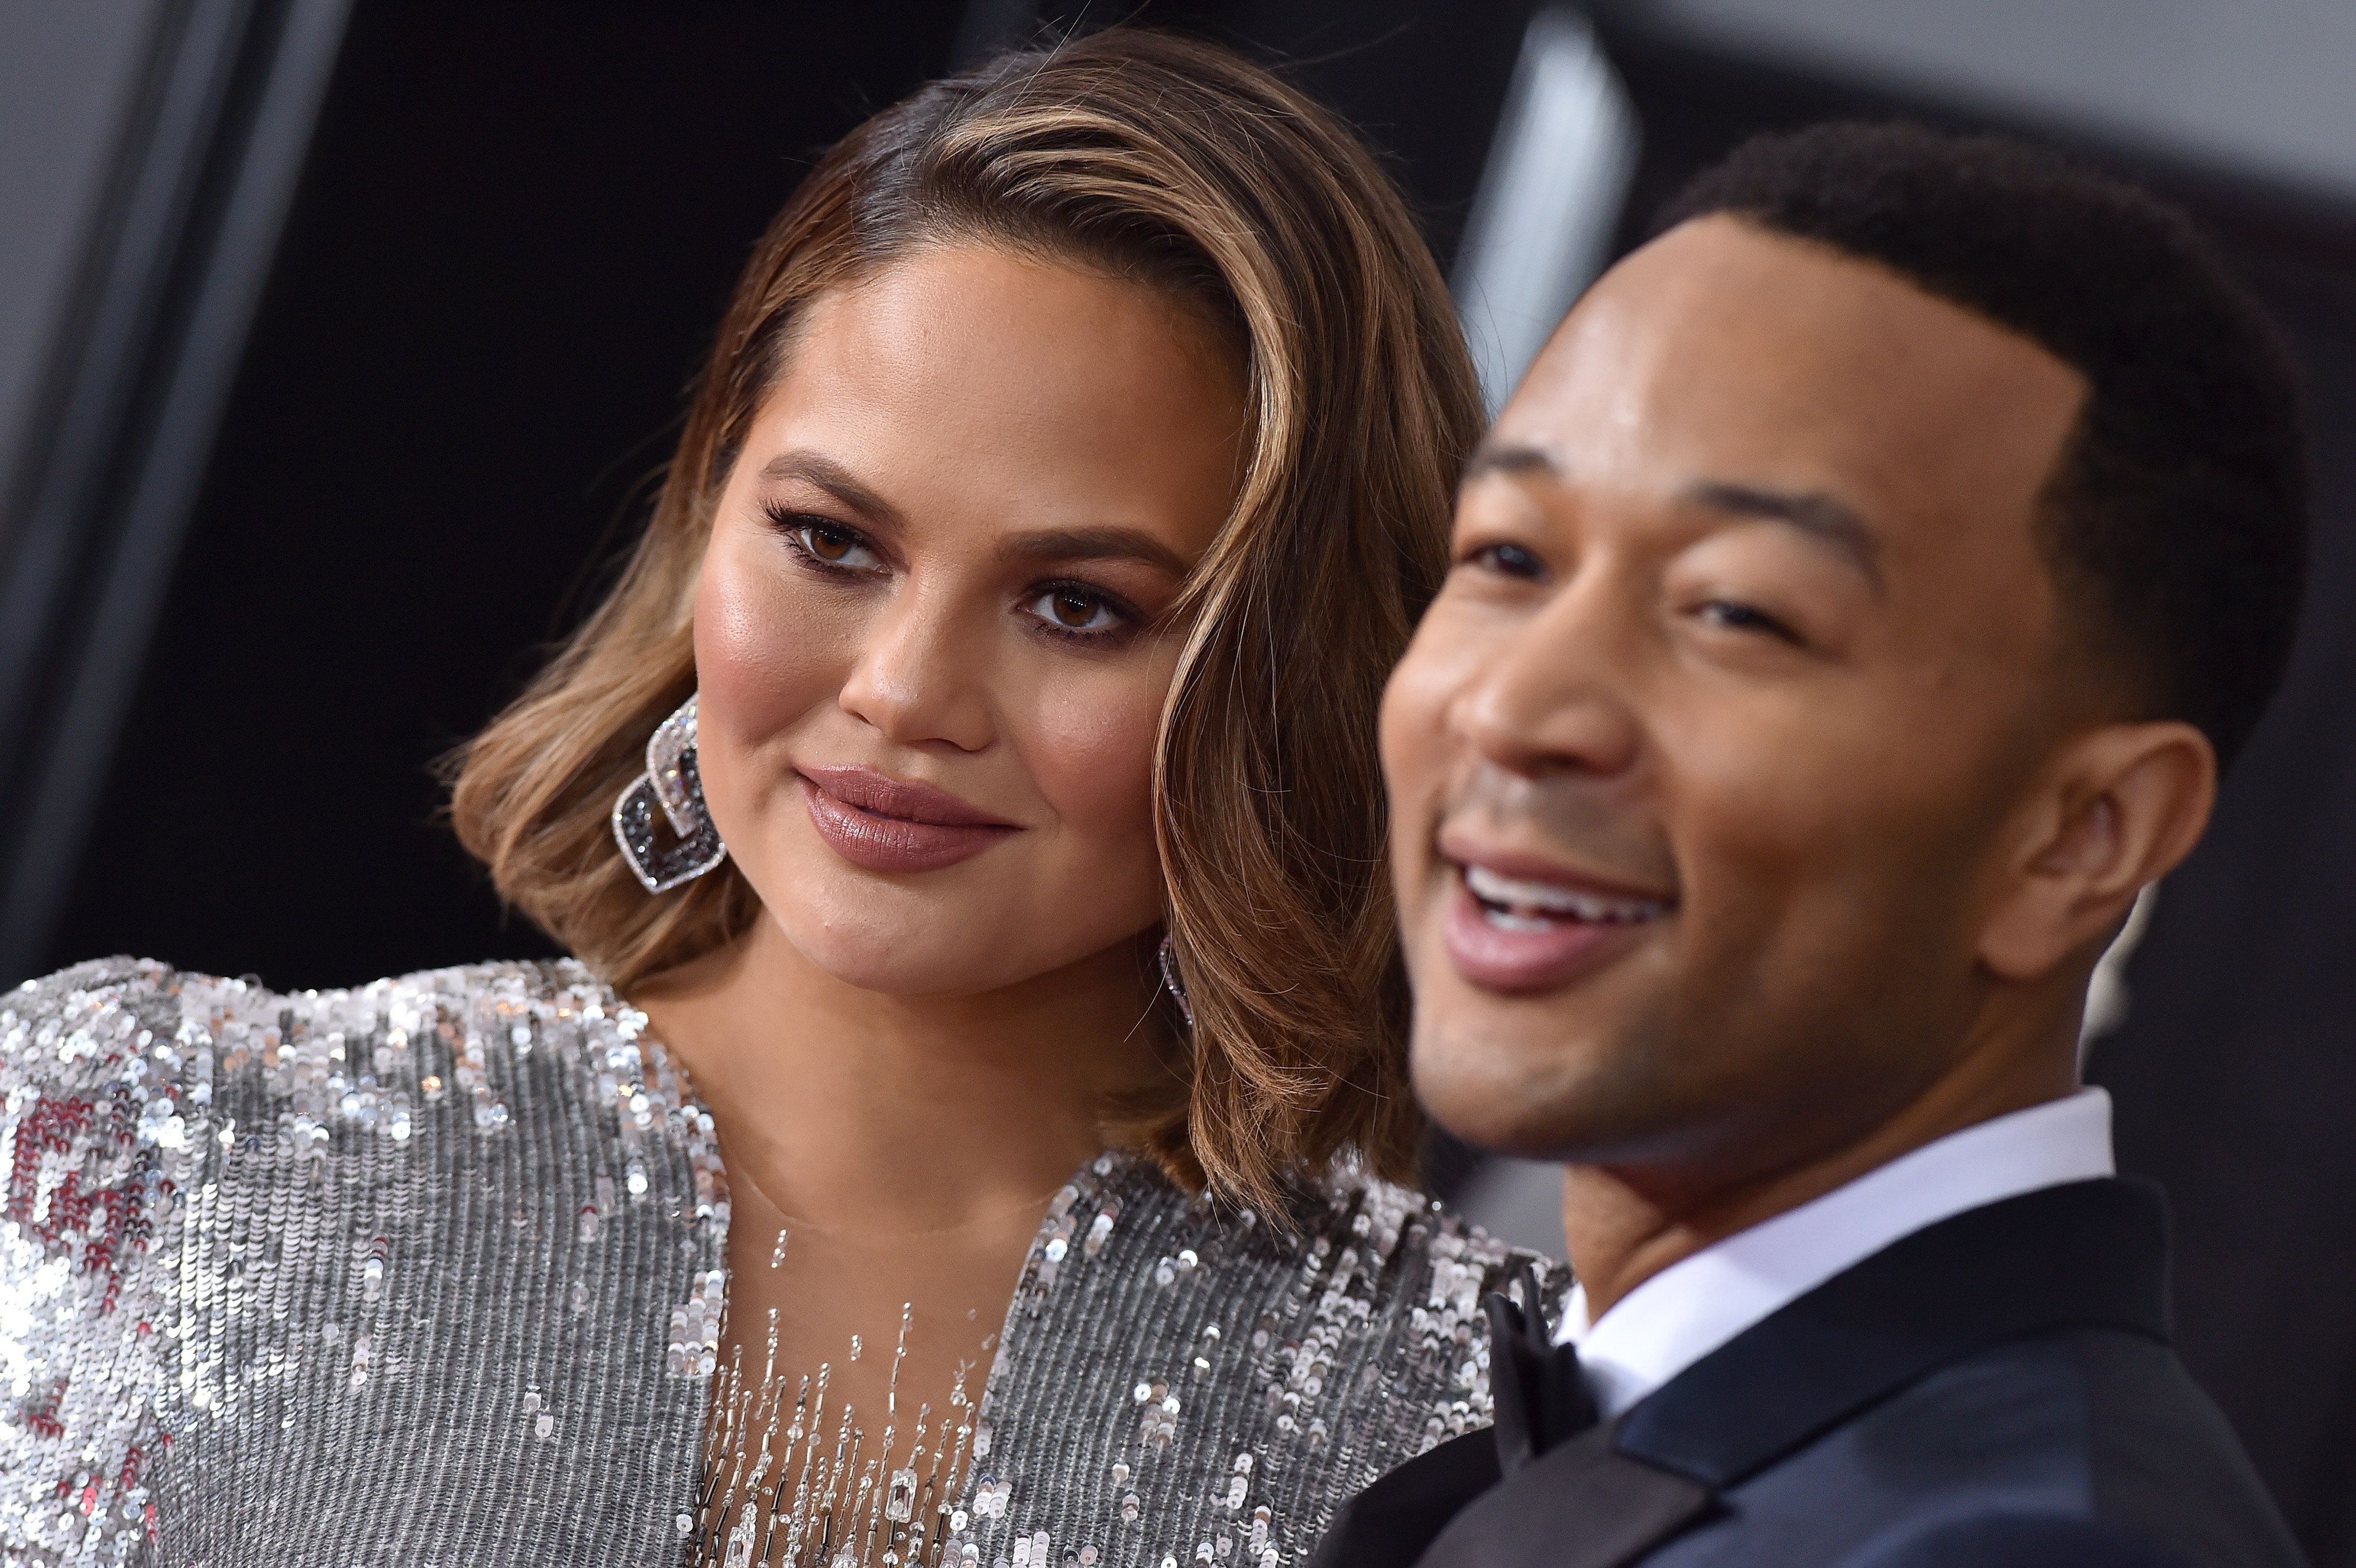 NEW YORK, NY - JANUARY 28:  Model Chrissy Teigen and recording artist John Legend attend the 60th Annual GRAMMY Awards at Madison Square Garden on January 28, 2018 in New York City.  (Photo by Axelle/Bauer-Griffin/FilmMagic)